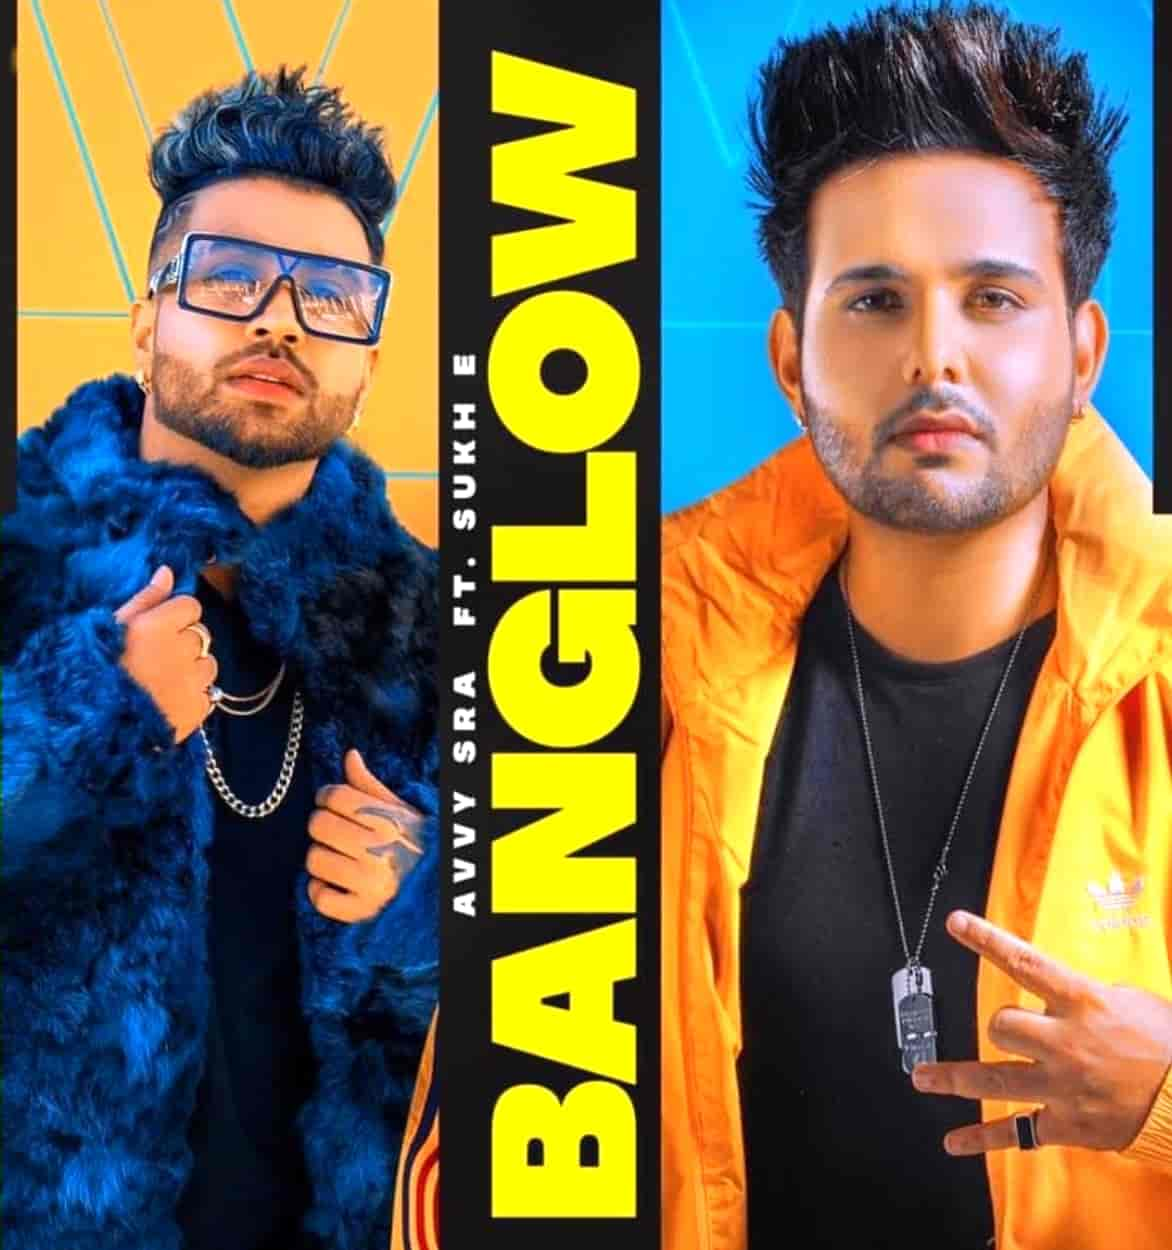 Banglow Punjabi Song Image Features Avvy Sra and Afsana Khan